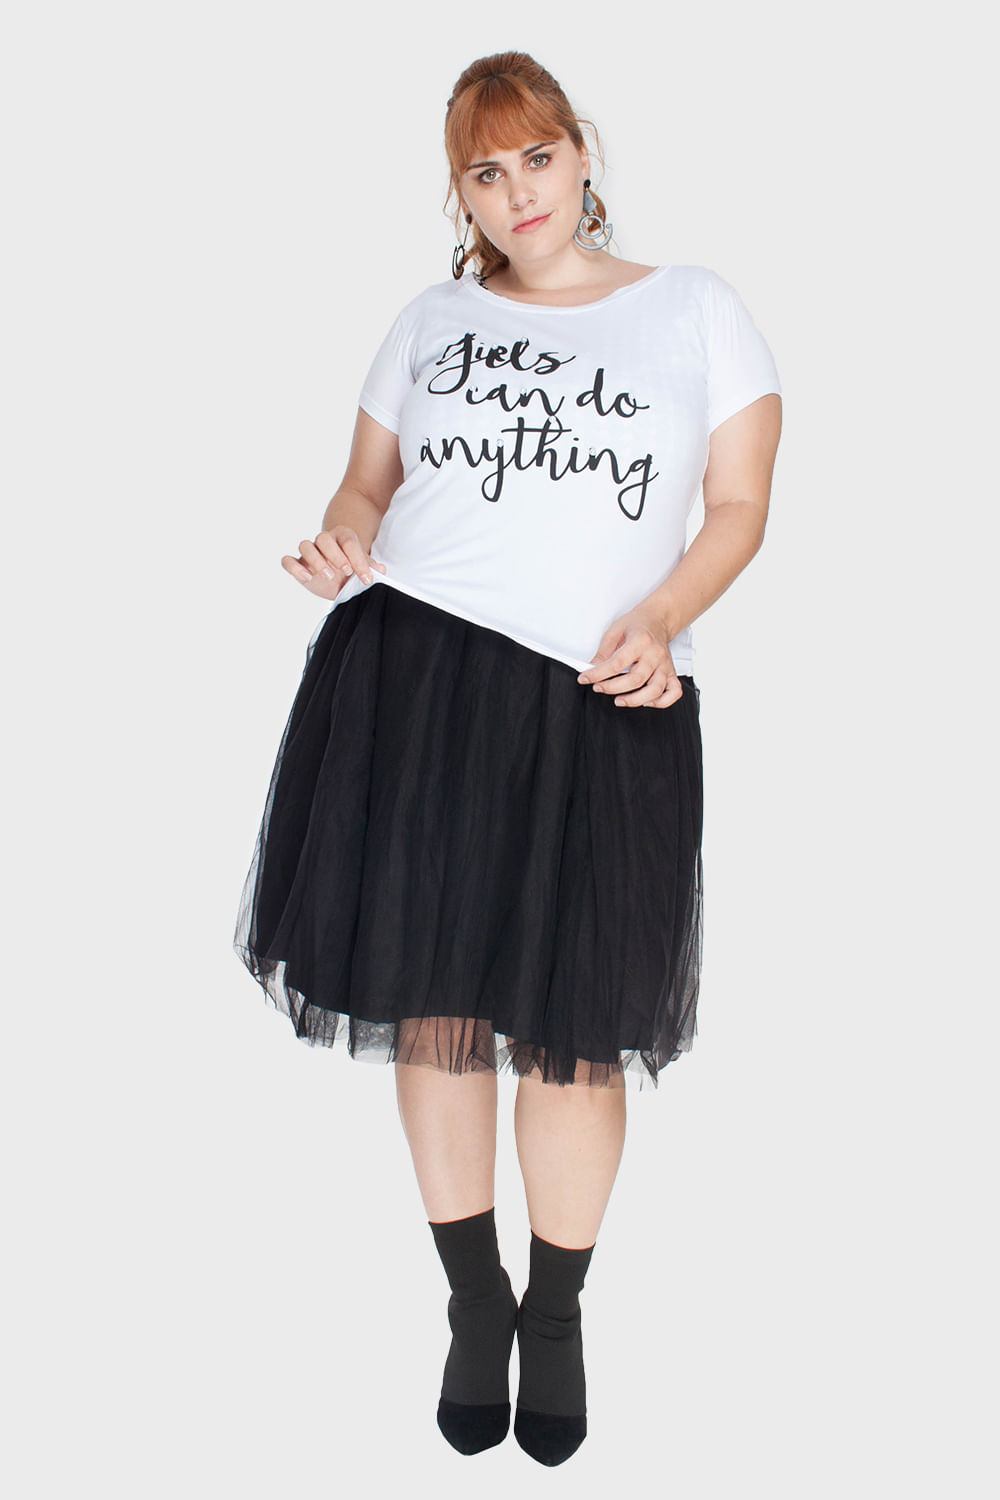 Camiseta-Girls-Can-do-Anything-Plus-Size_T1